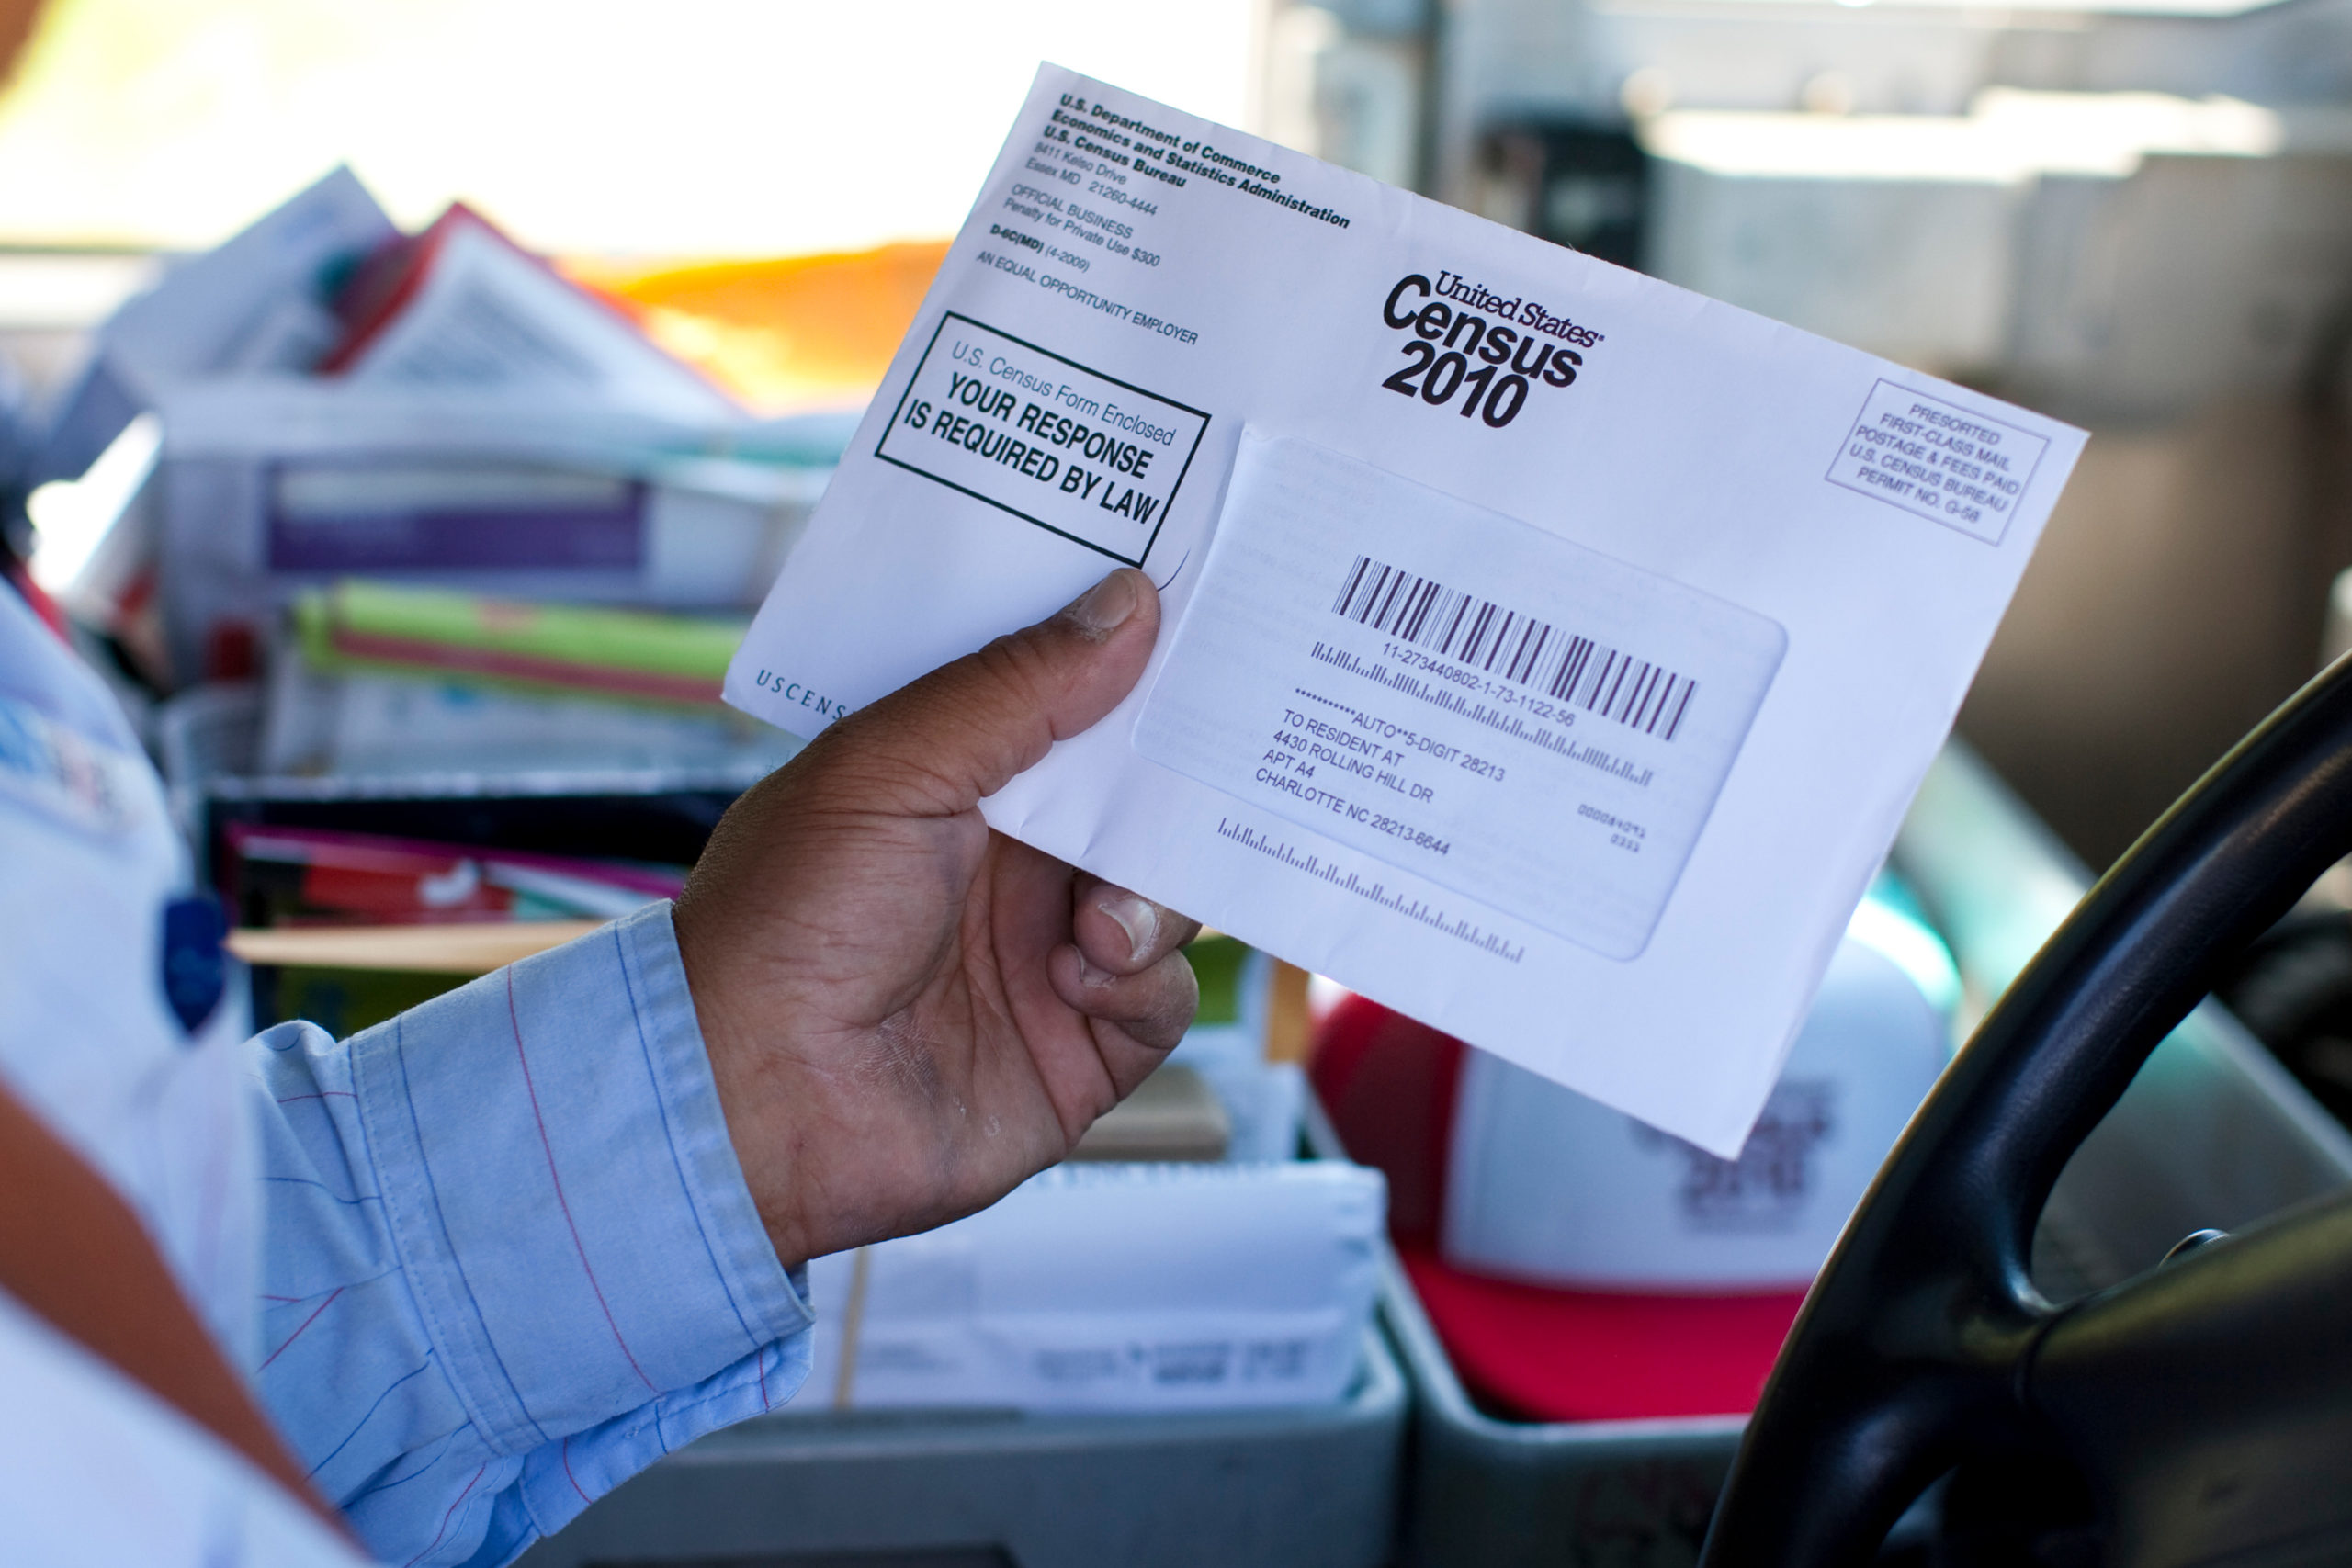 US Postal Service mail carrier Thomas Russell holds a 2010 Census form while working his route.